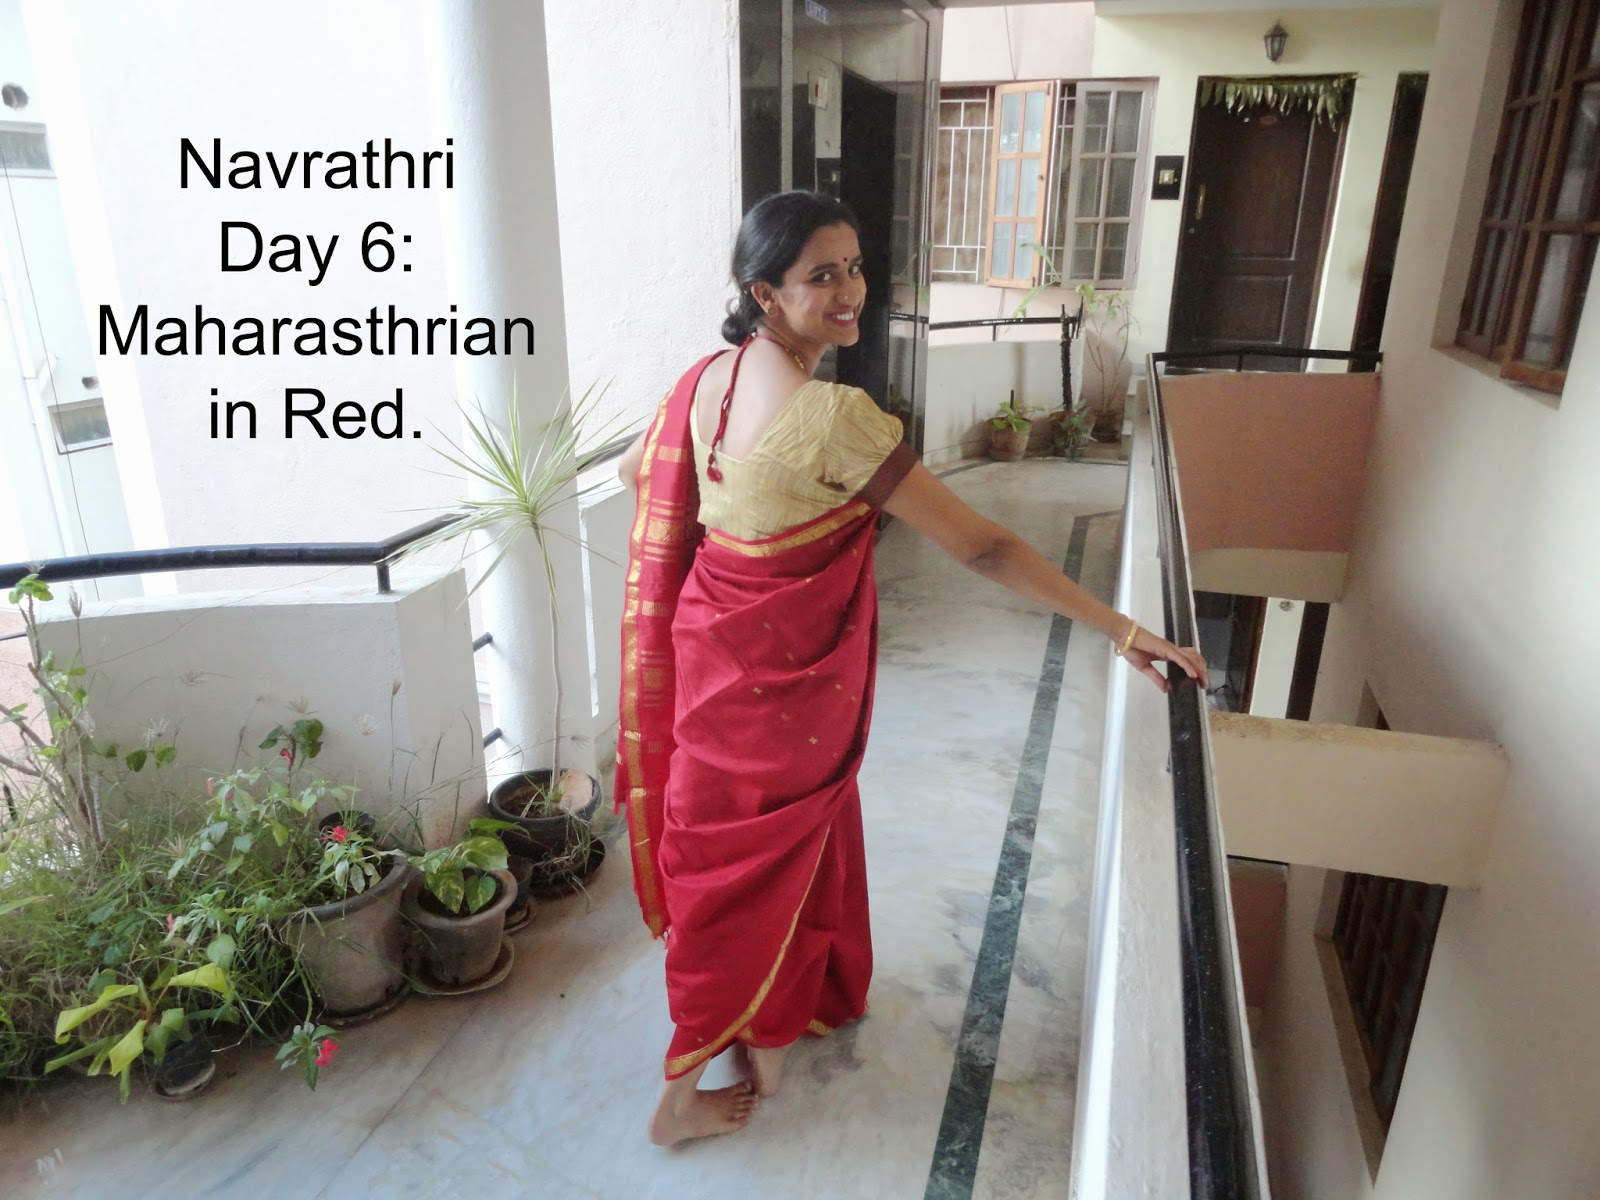 Navrathri Day 6: Lets paint the town Red, the Maharasthrian way. image